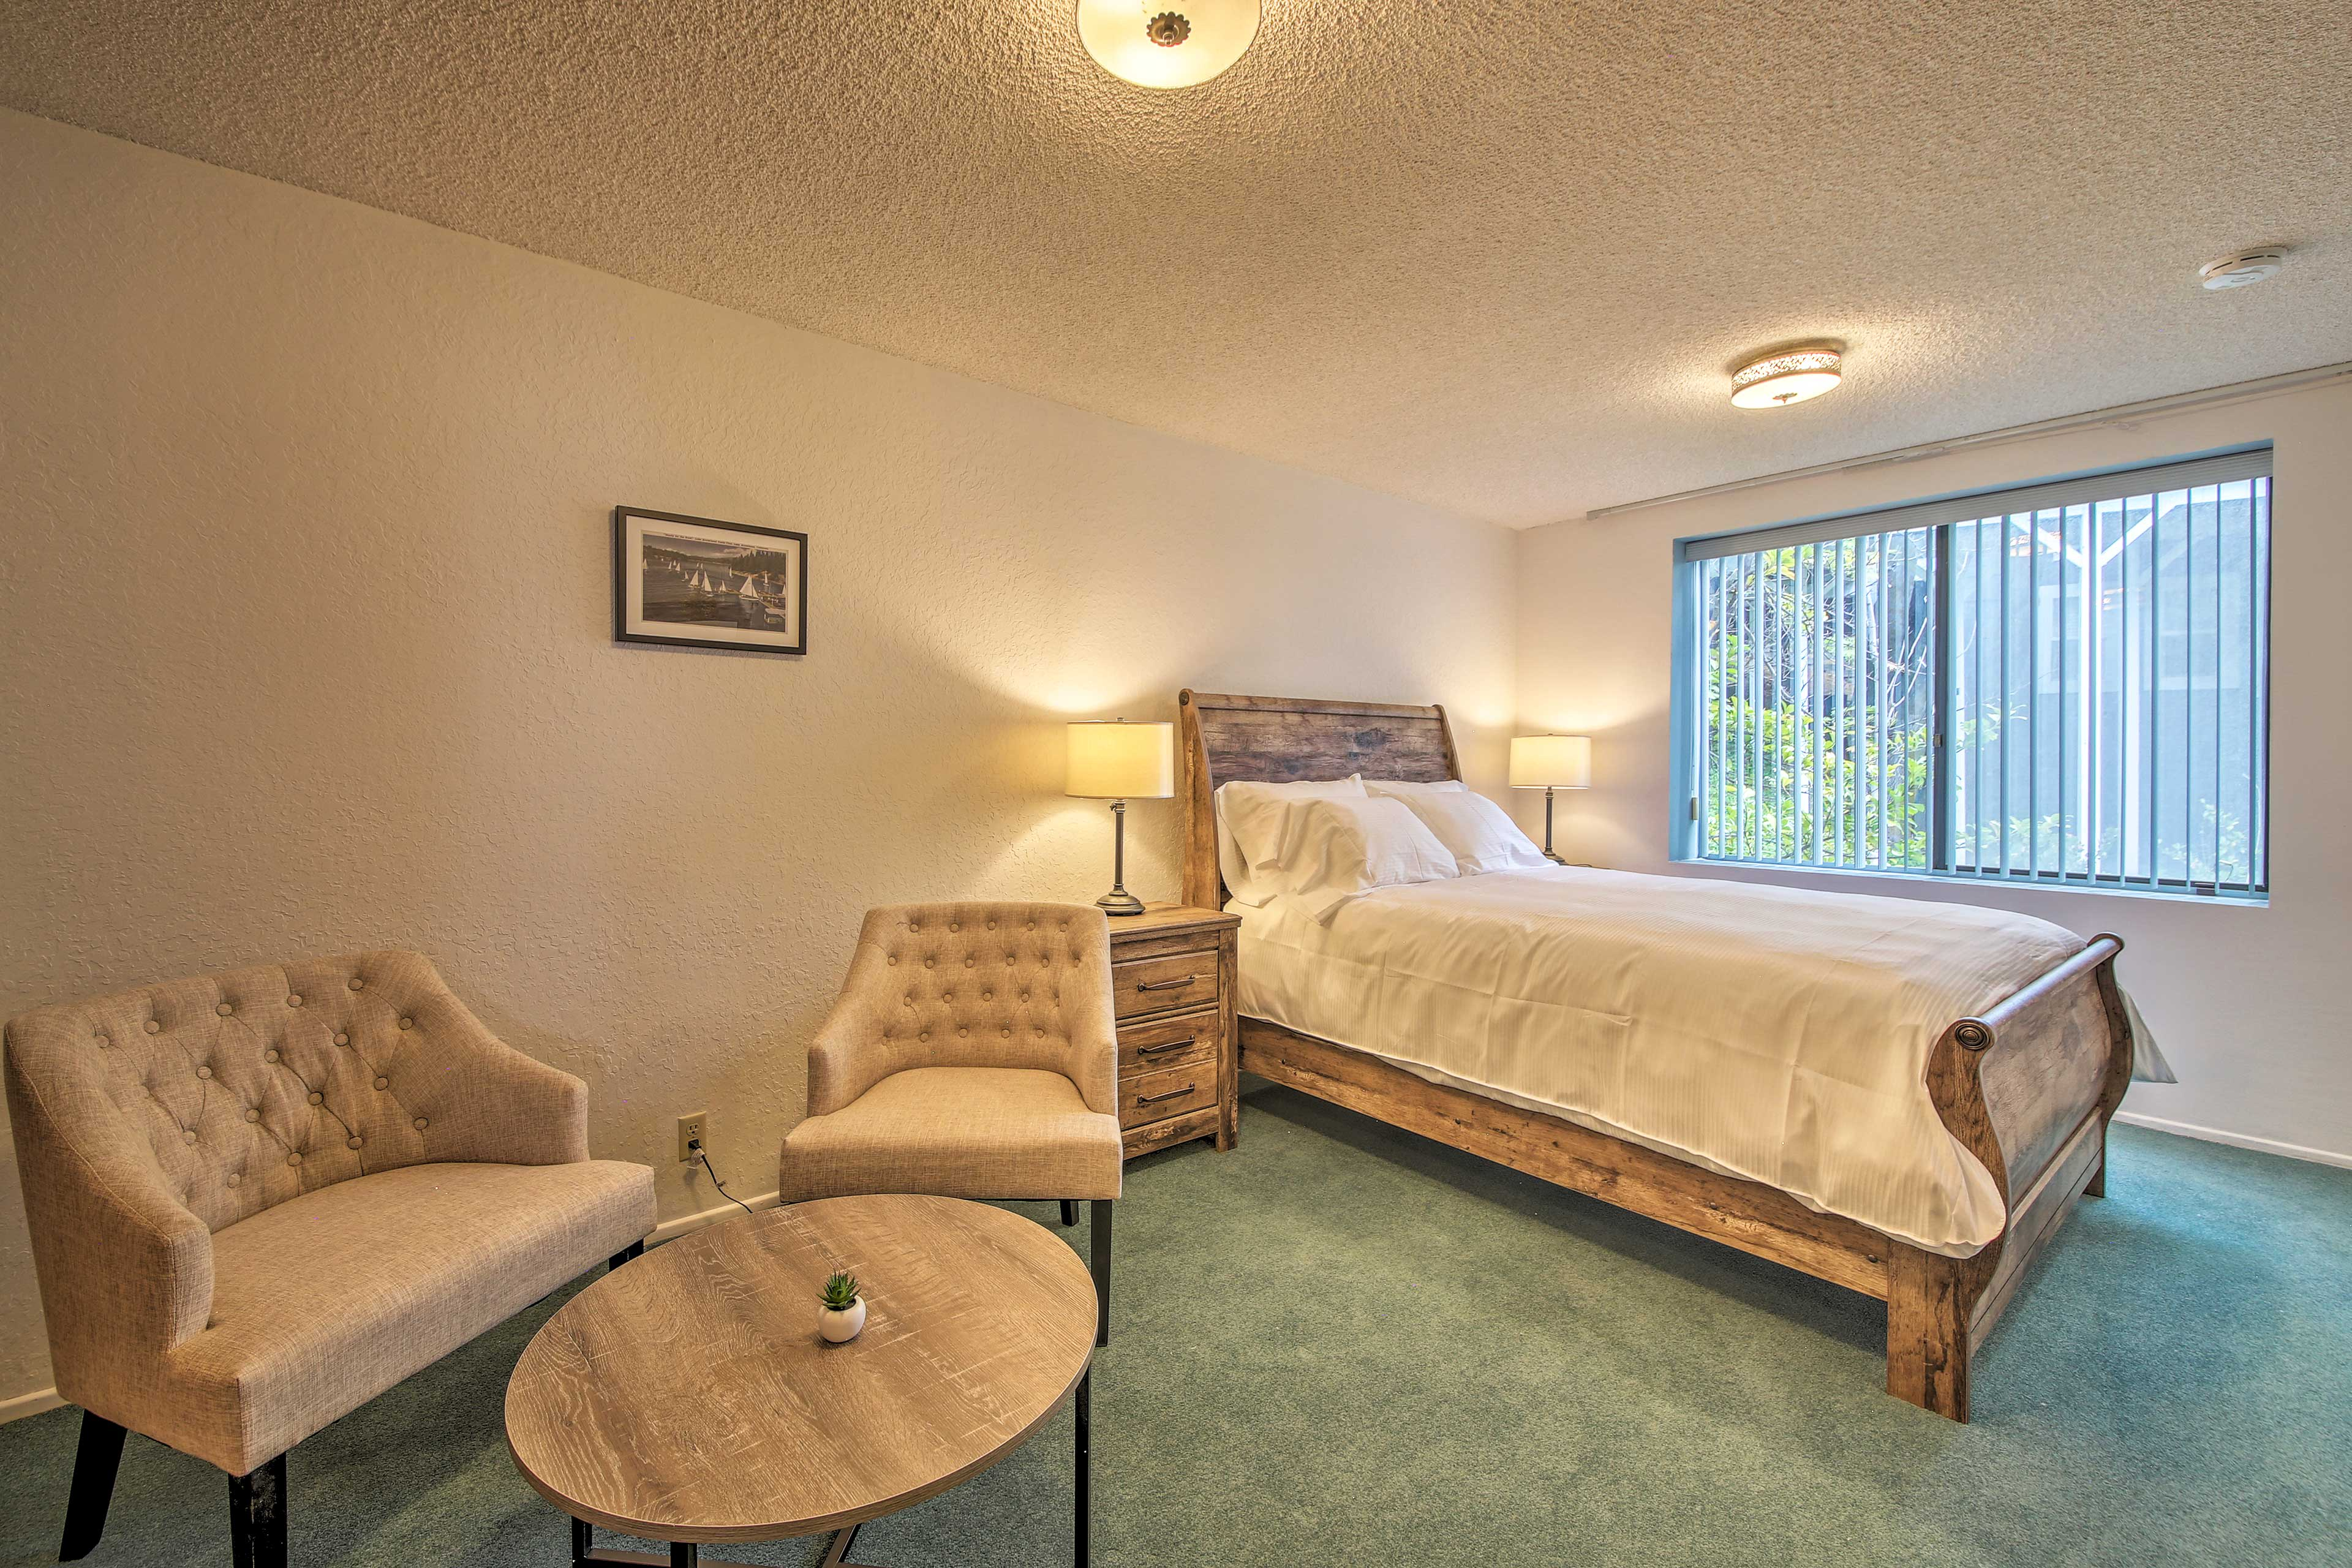 Find a queen-sized bed awaiting you in bedroom 4.